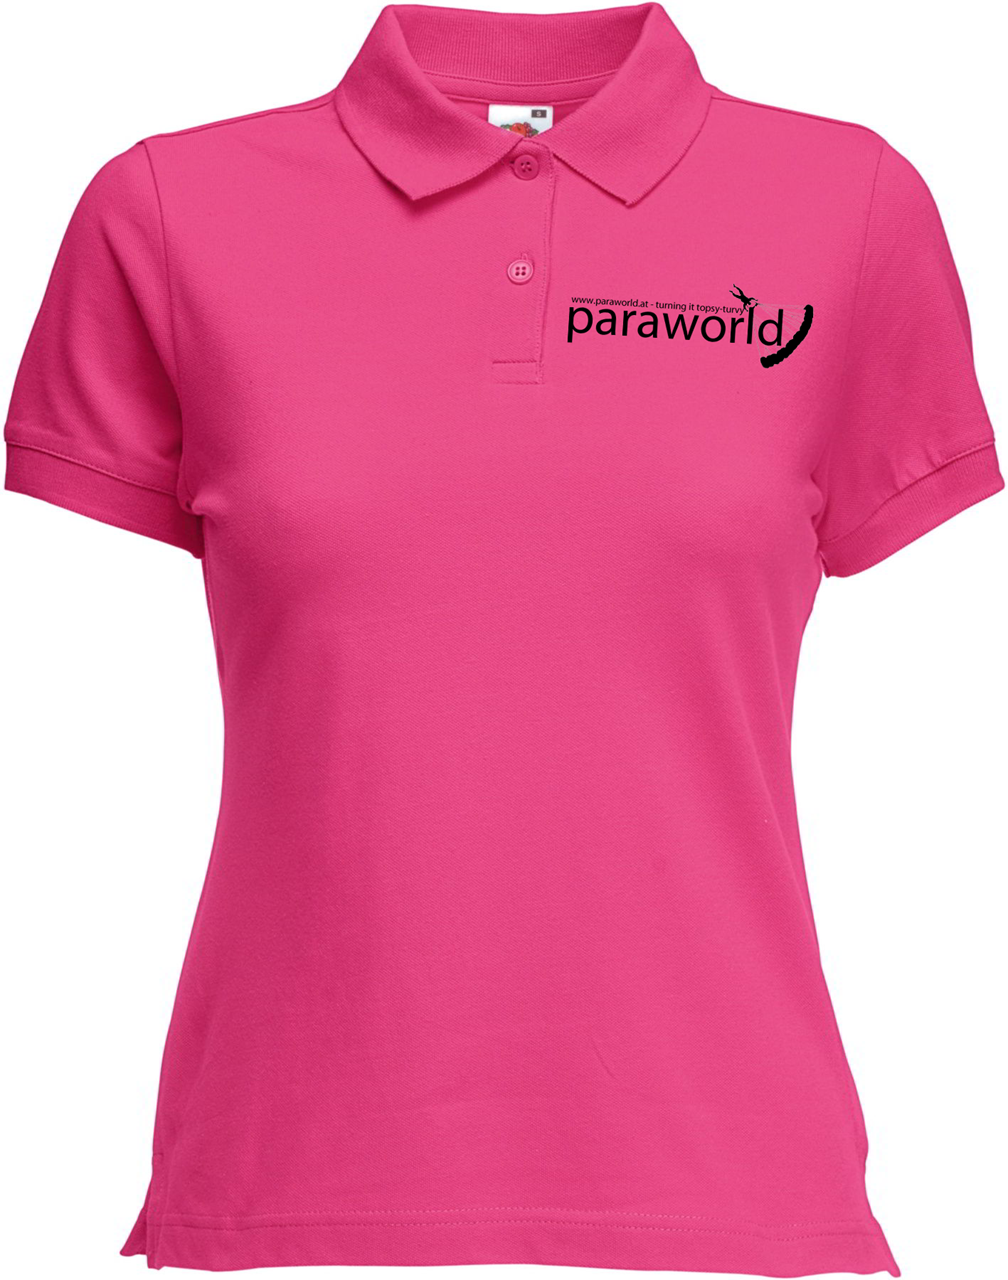 home embroidery t shirts ladies polo t shirt. Black Bedroom Furniture Sets. Home Design Ideas